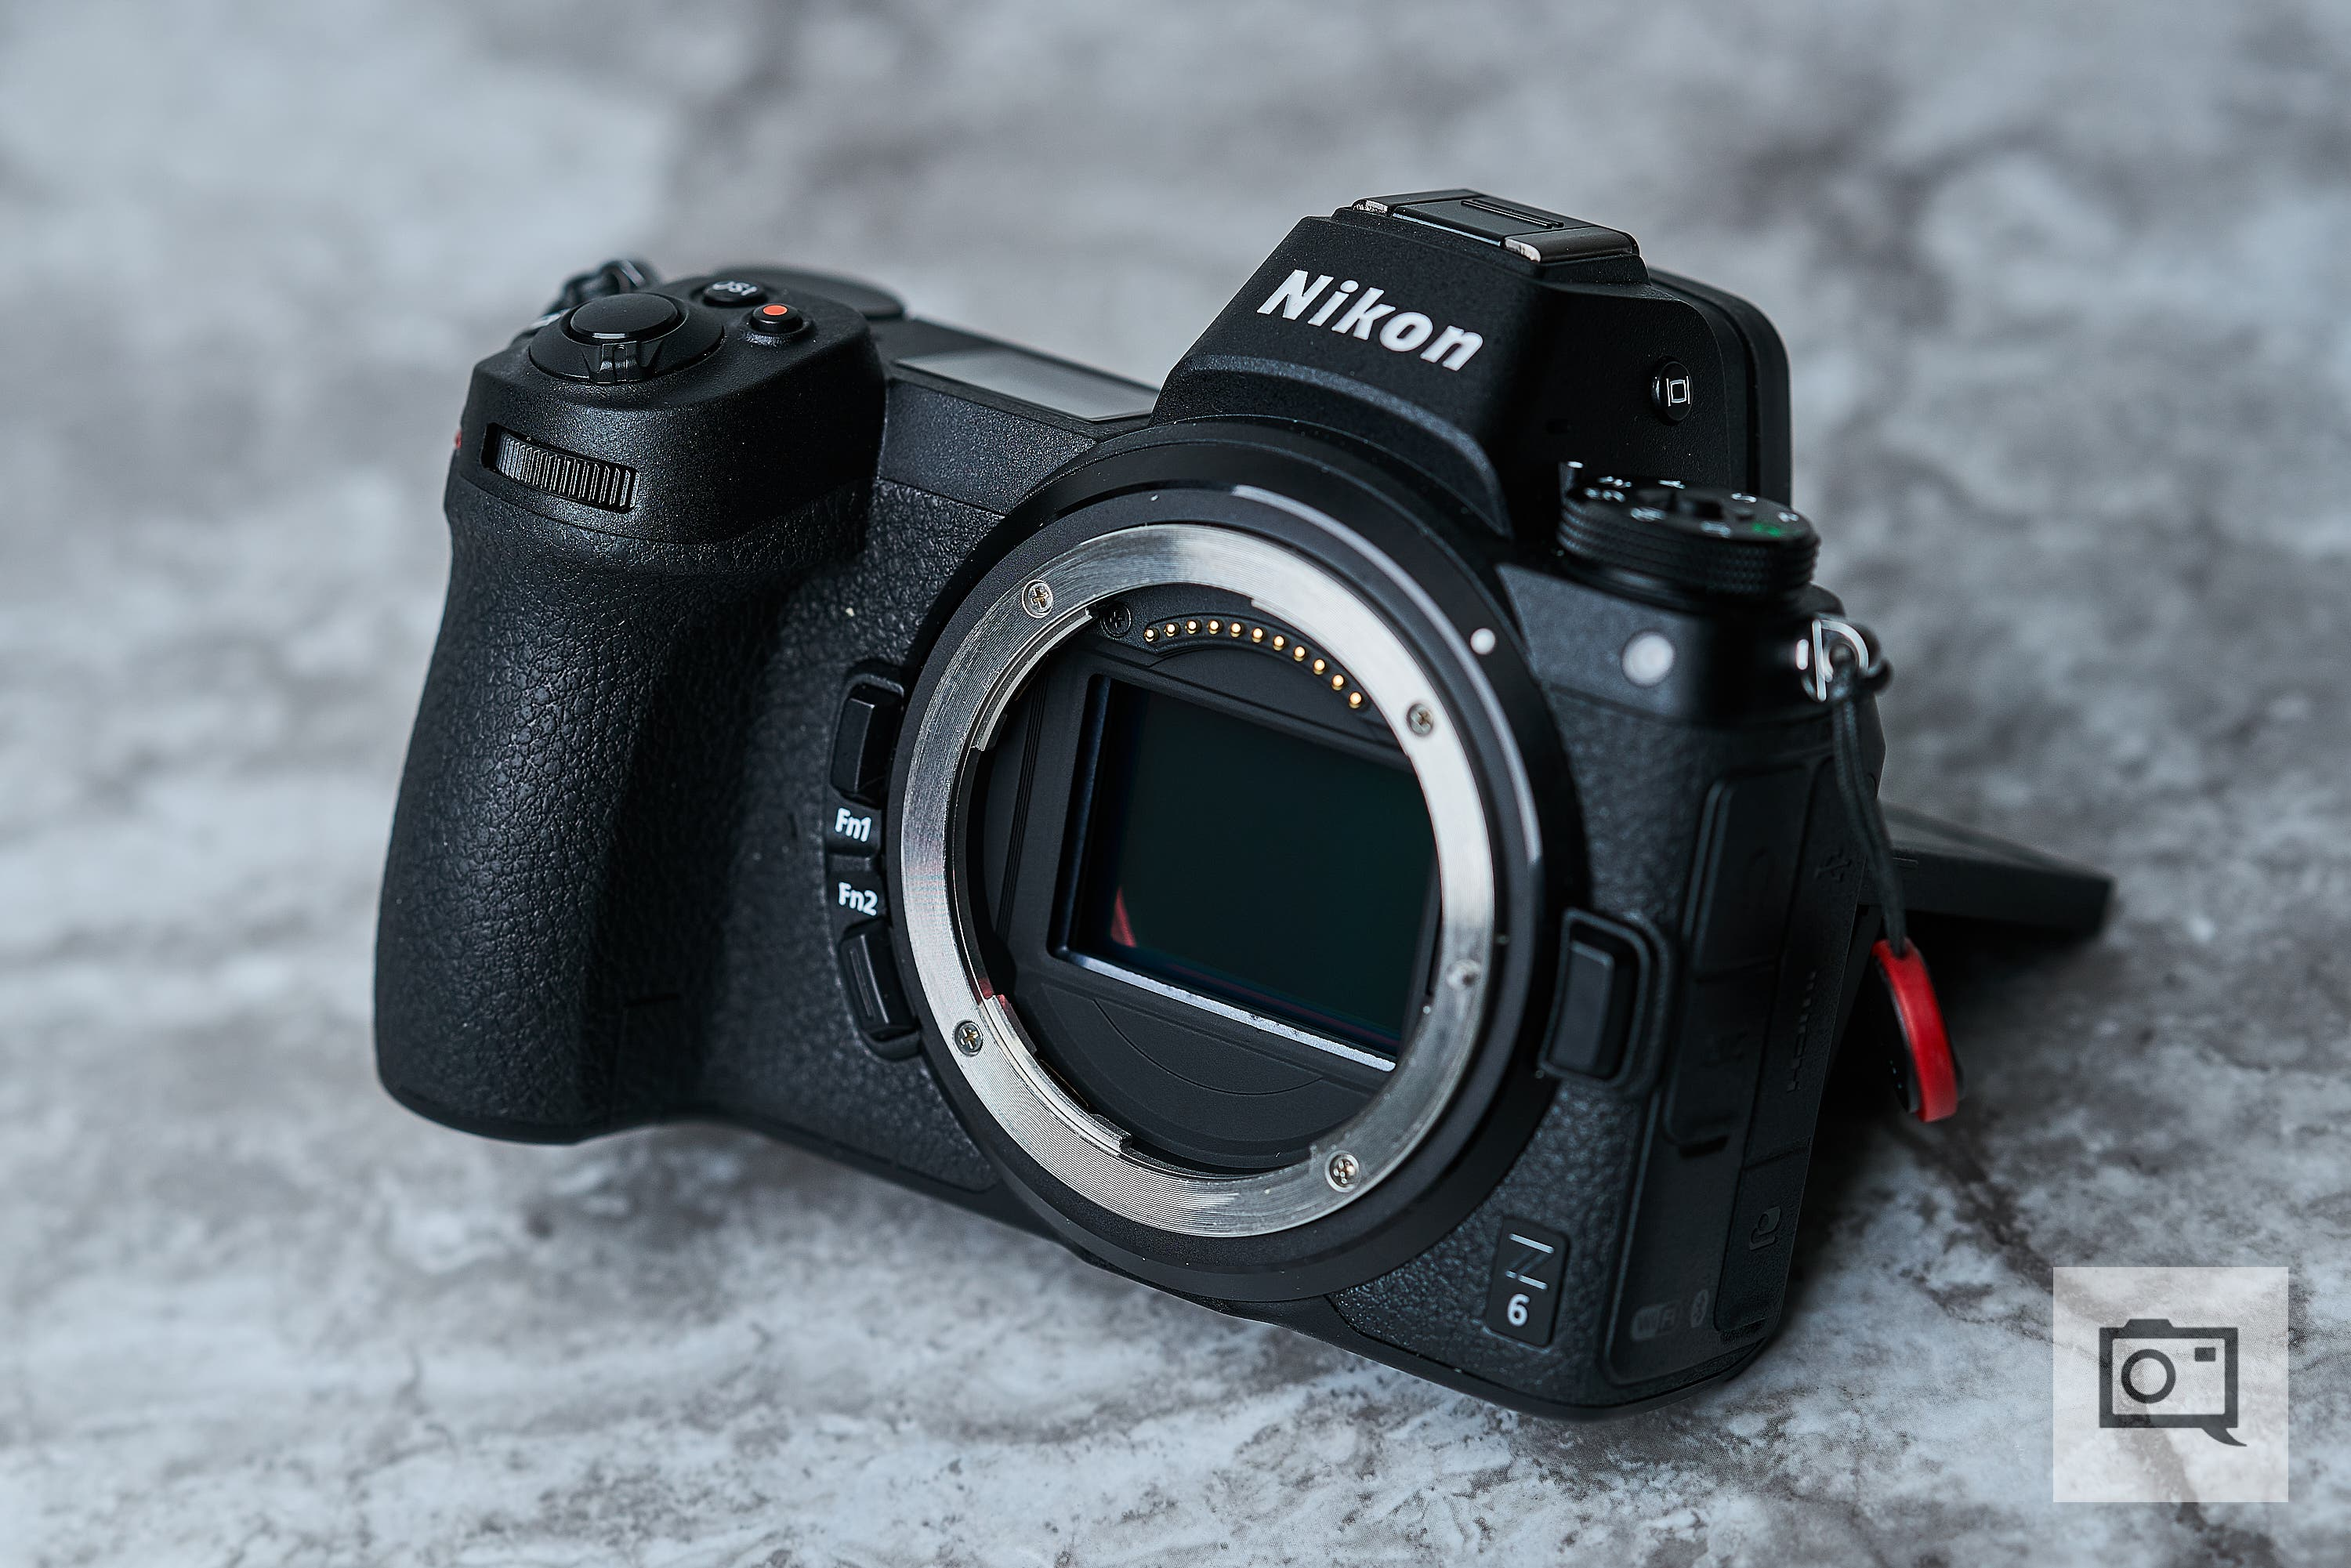 A New Adapter Lets You Use E Mount Lenses on Nikon's Z6/Z7 – But Why?